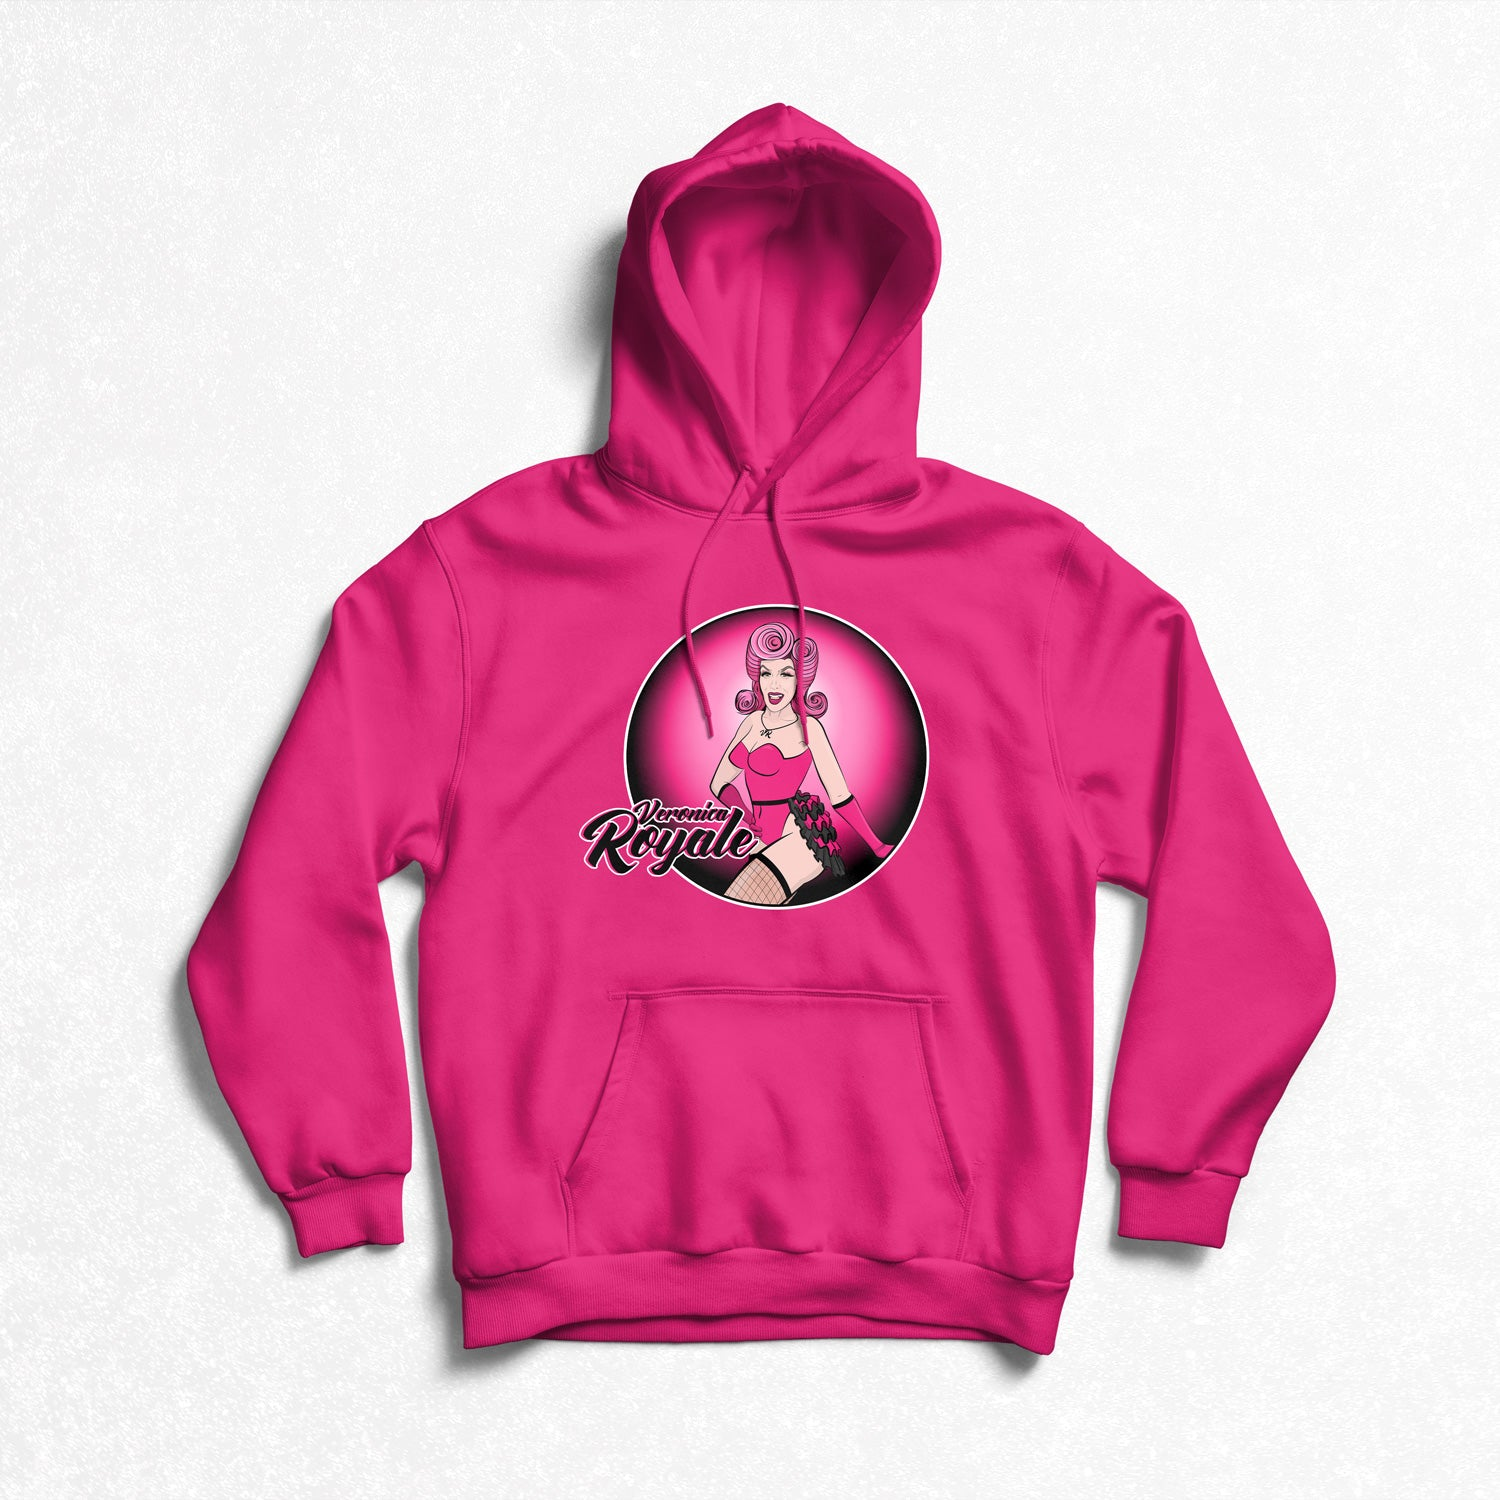 Veronica Royale - Round logo Hoodie